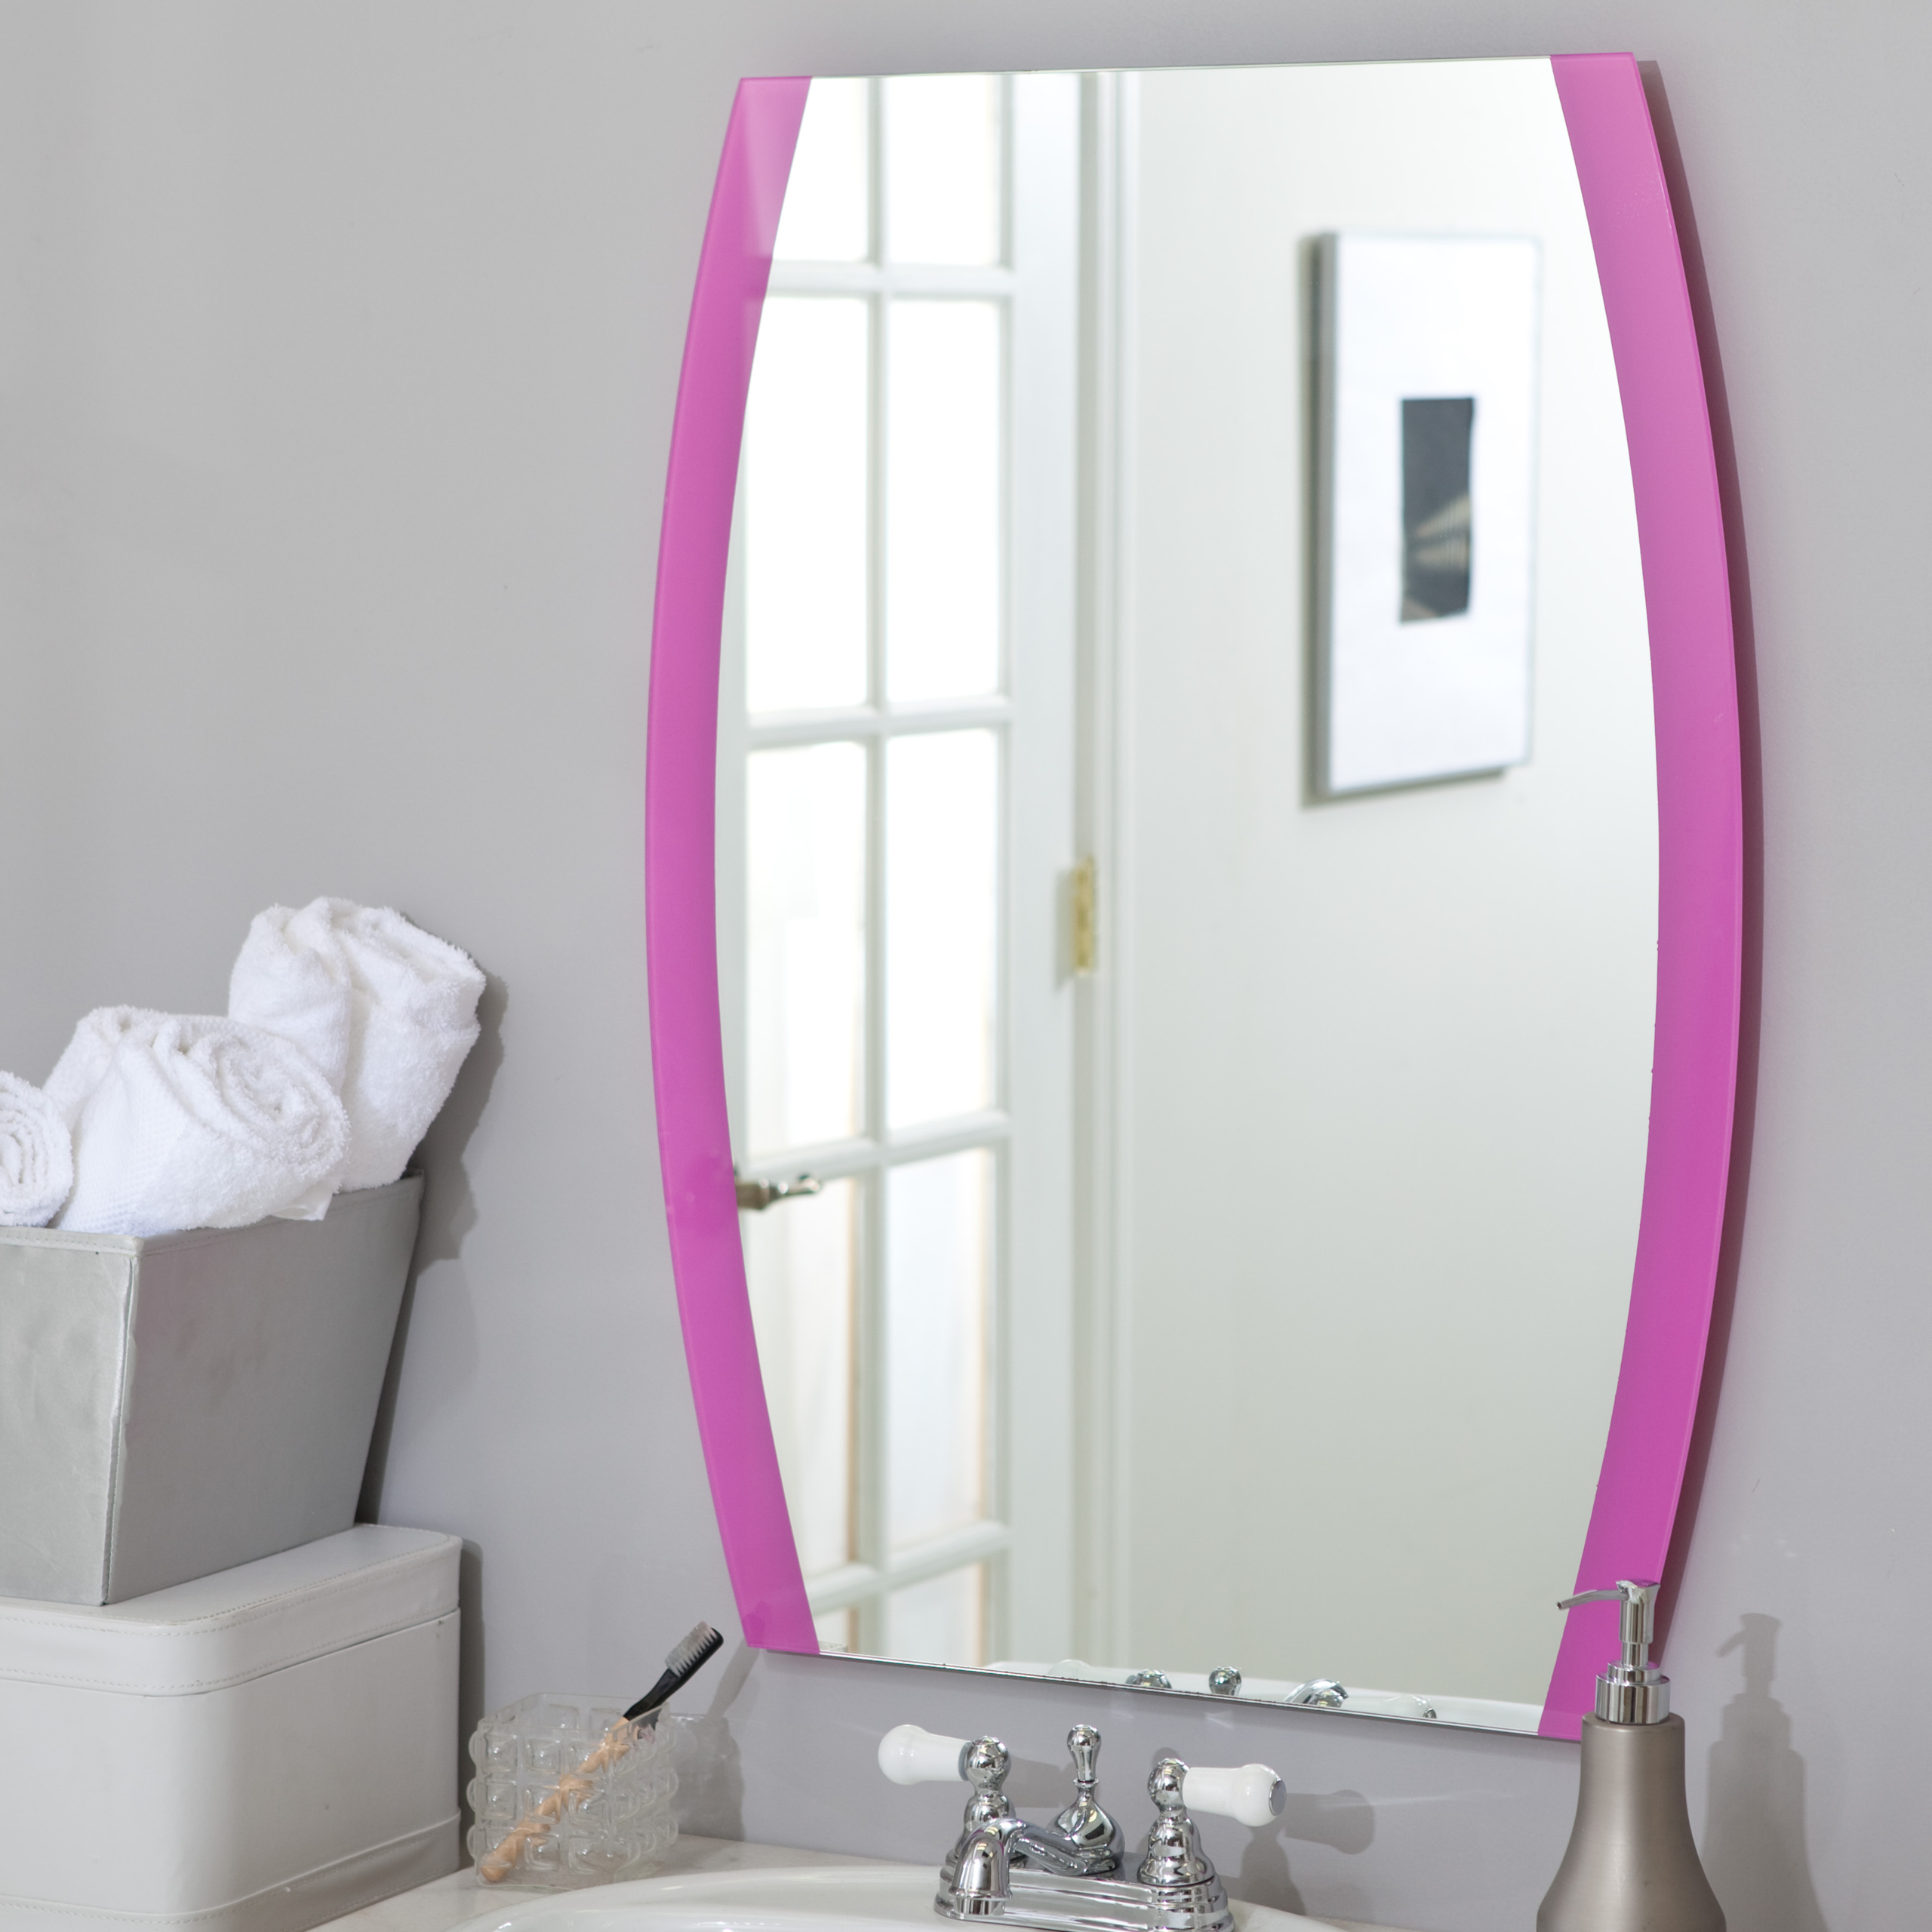 Captivating Mirror For Kids Room 7 .